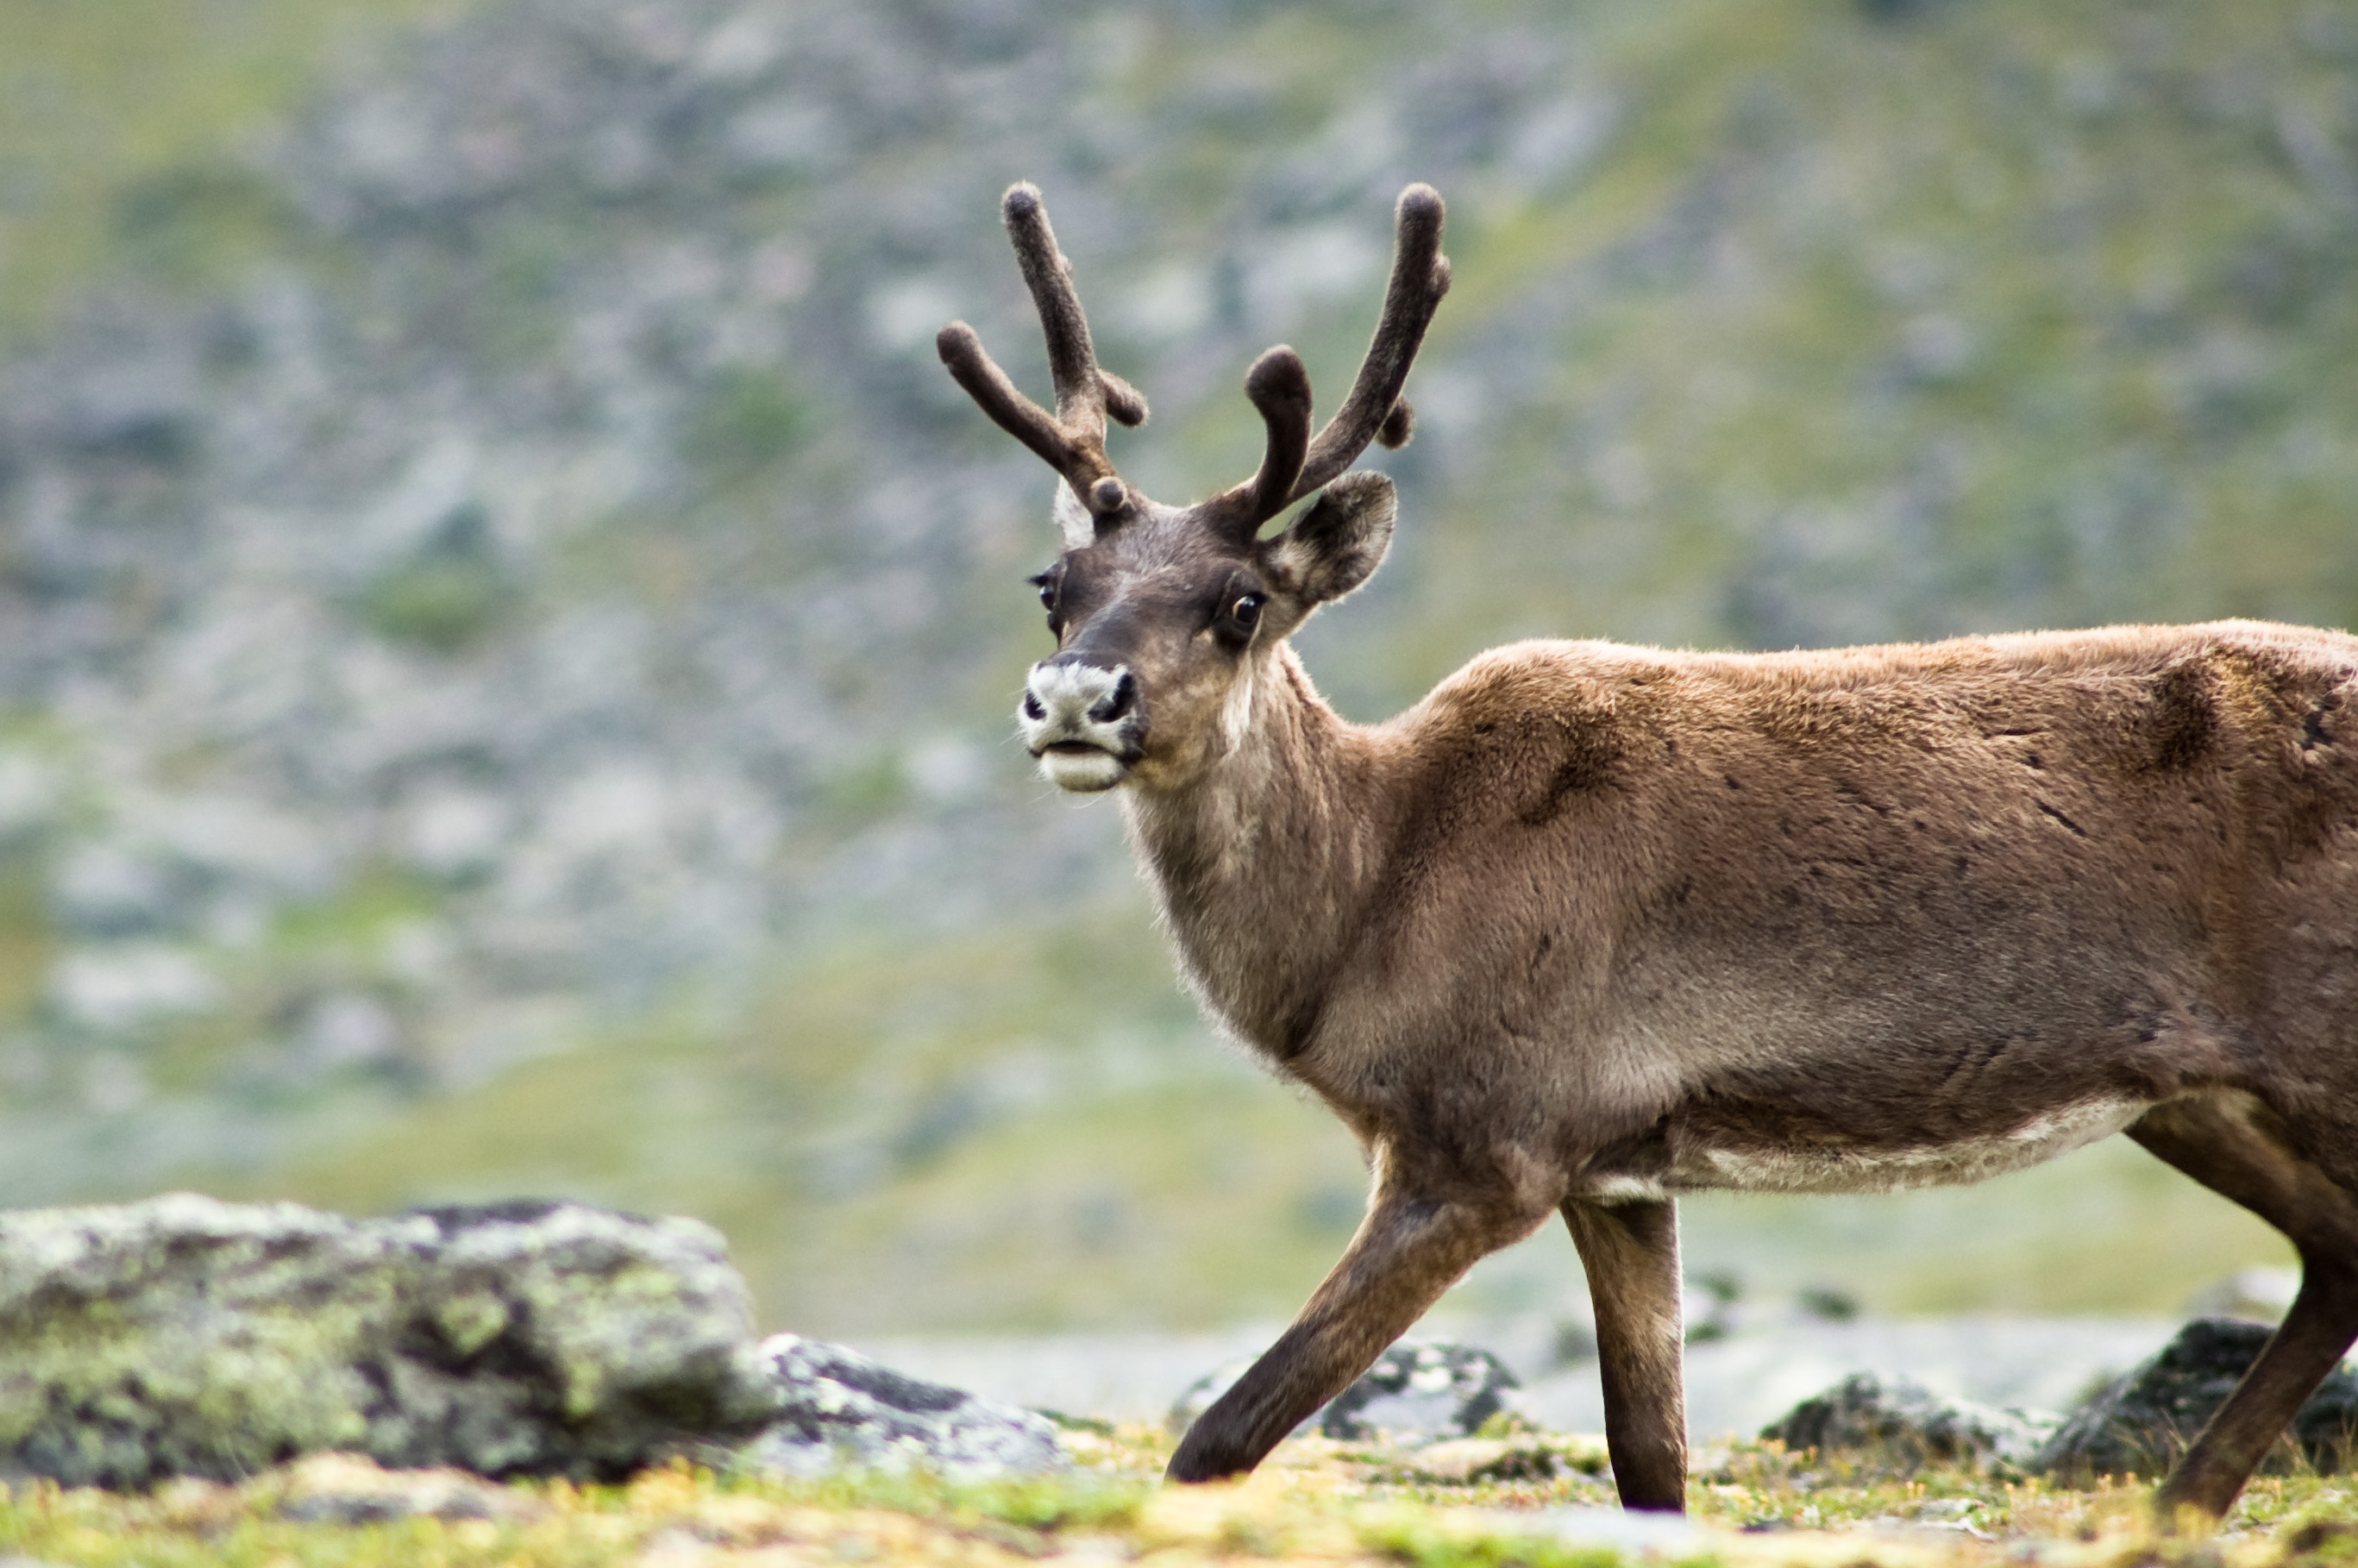 https://fasterskier.com/wp-content/blogs.dir/1/files/2016/07/Reindeer_in_Kebnekaise.jpg